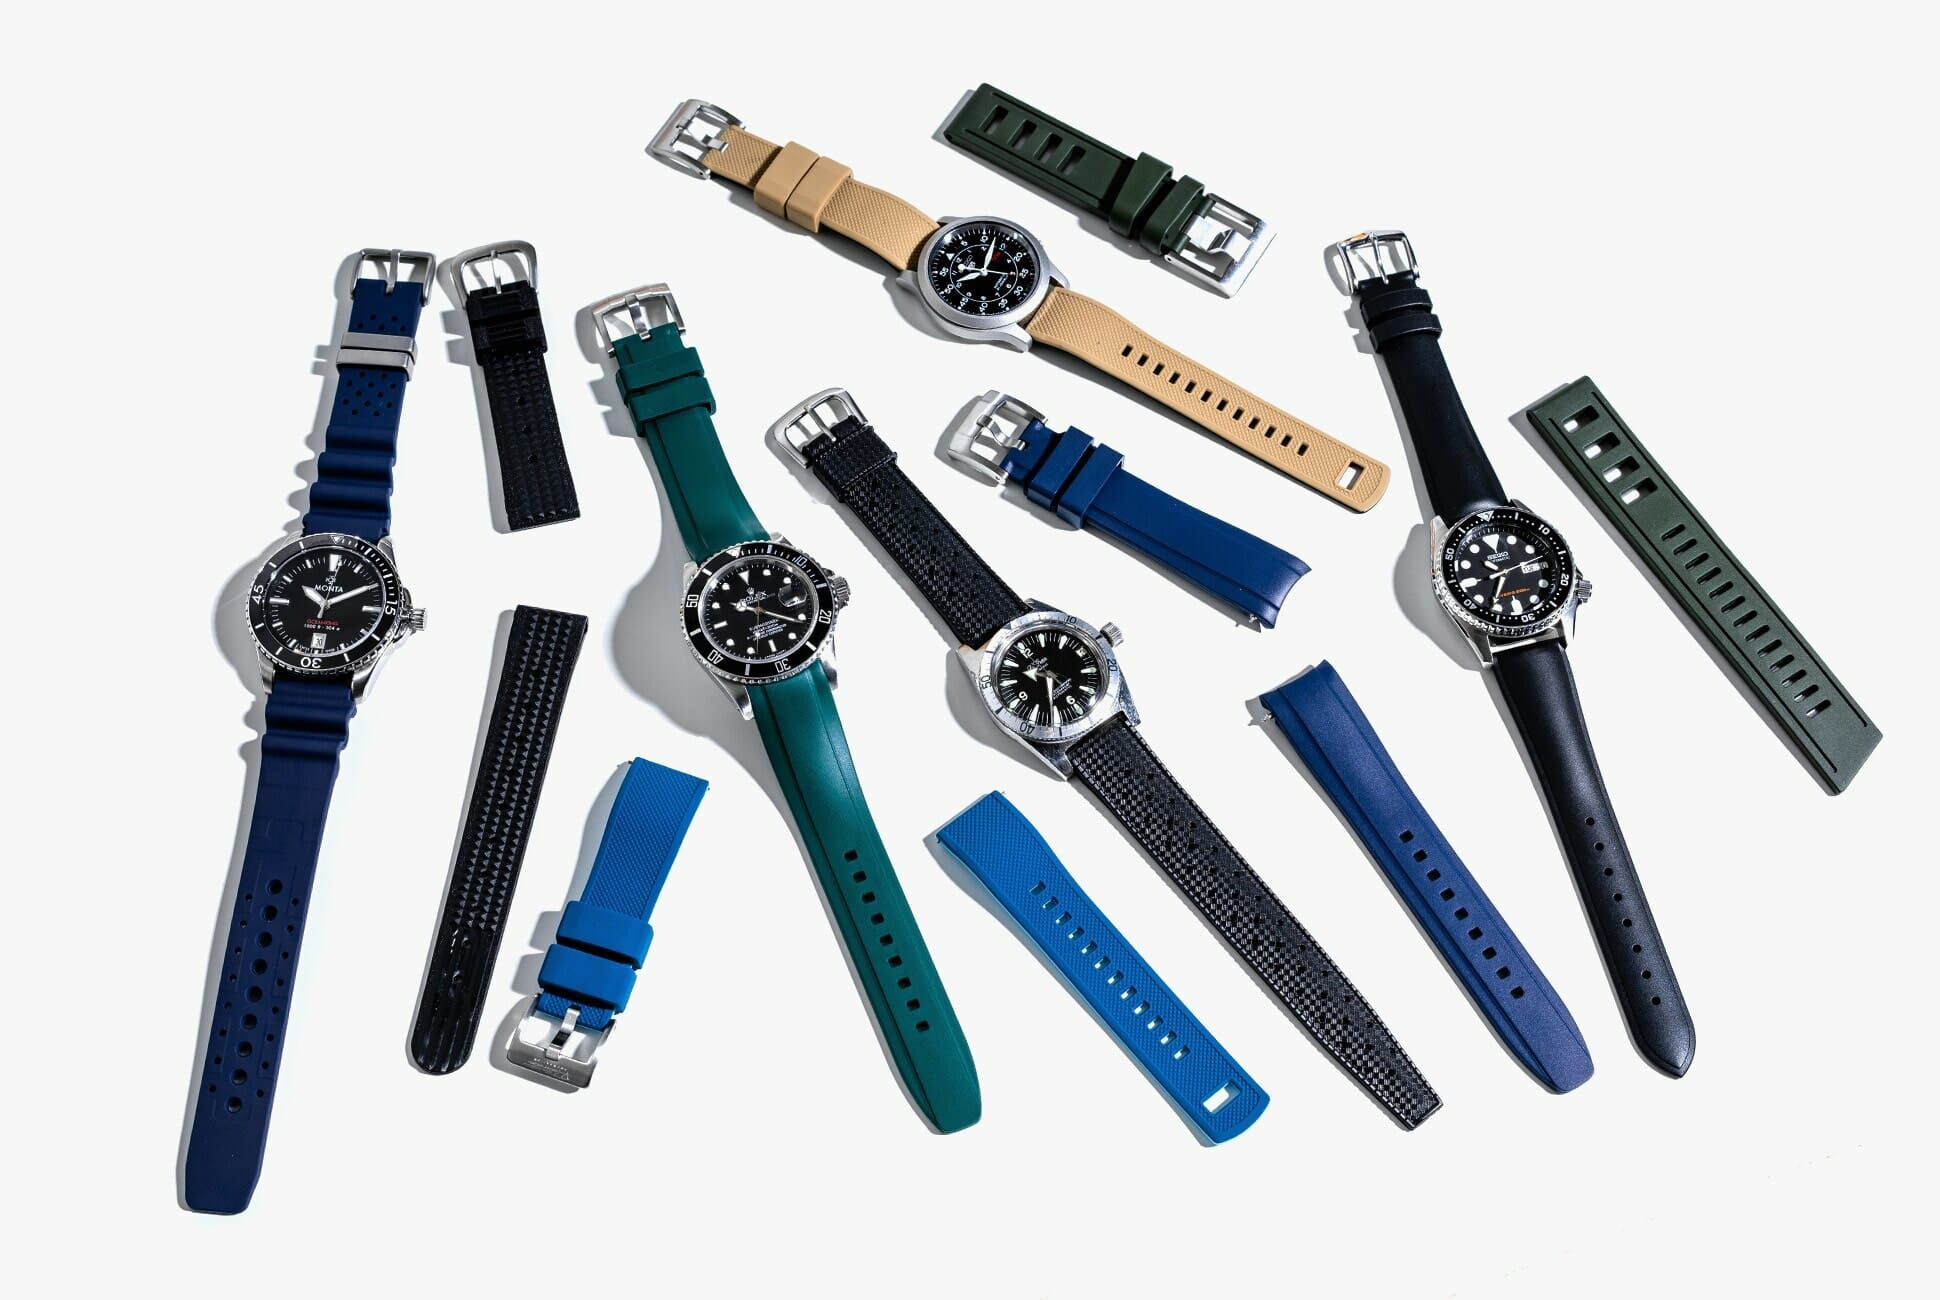 Rubber fetish: 5 of the best sports watches on rubber straps from monochrome to lemon fresh